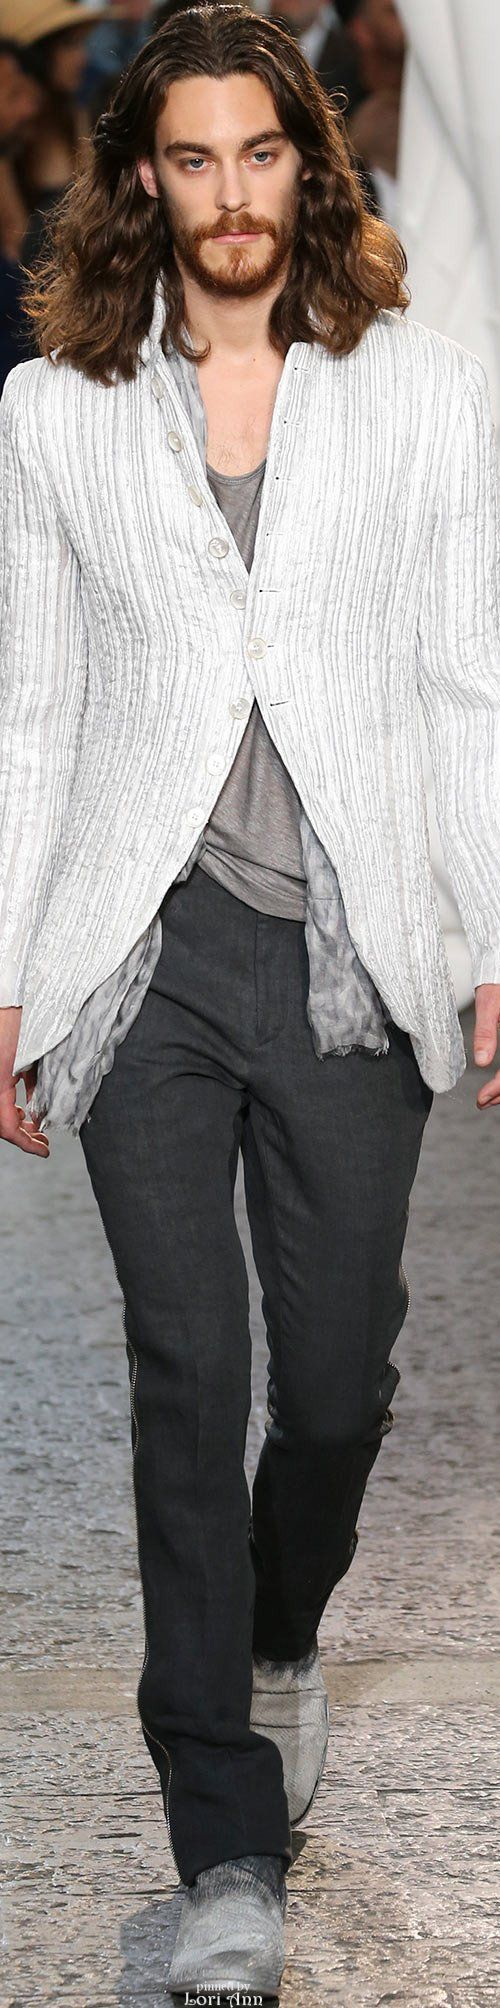 John Varvatos 2015 | Menswear | Men's Fashion | Men's Outfit for Spring/Summer | Casual and Stylish | Moda Masculina | Shop at designerclothingfans.com